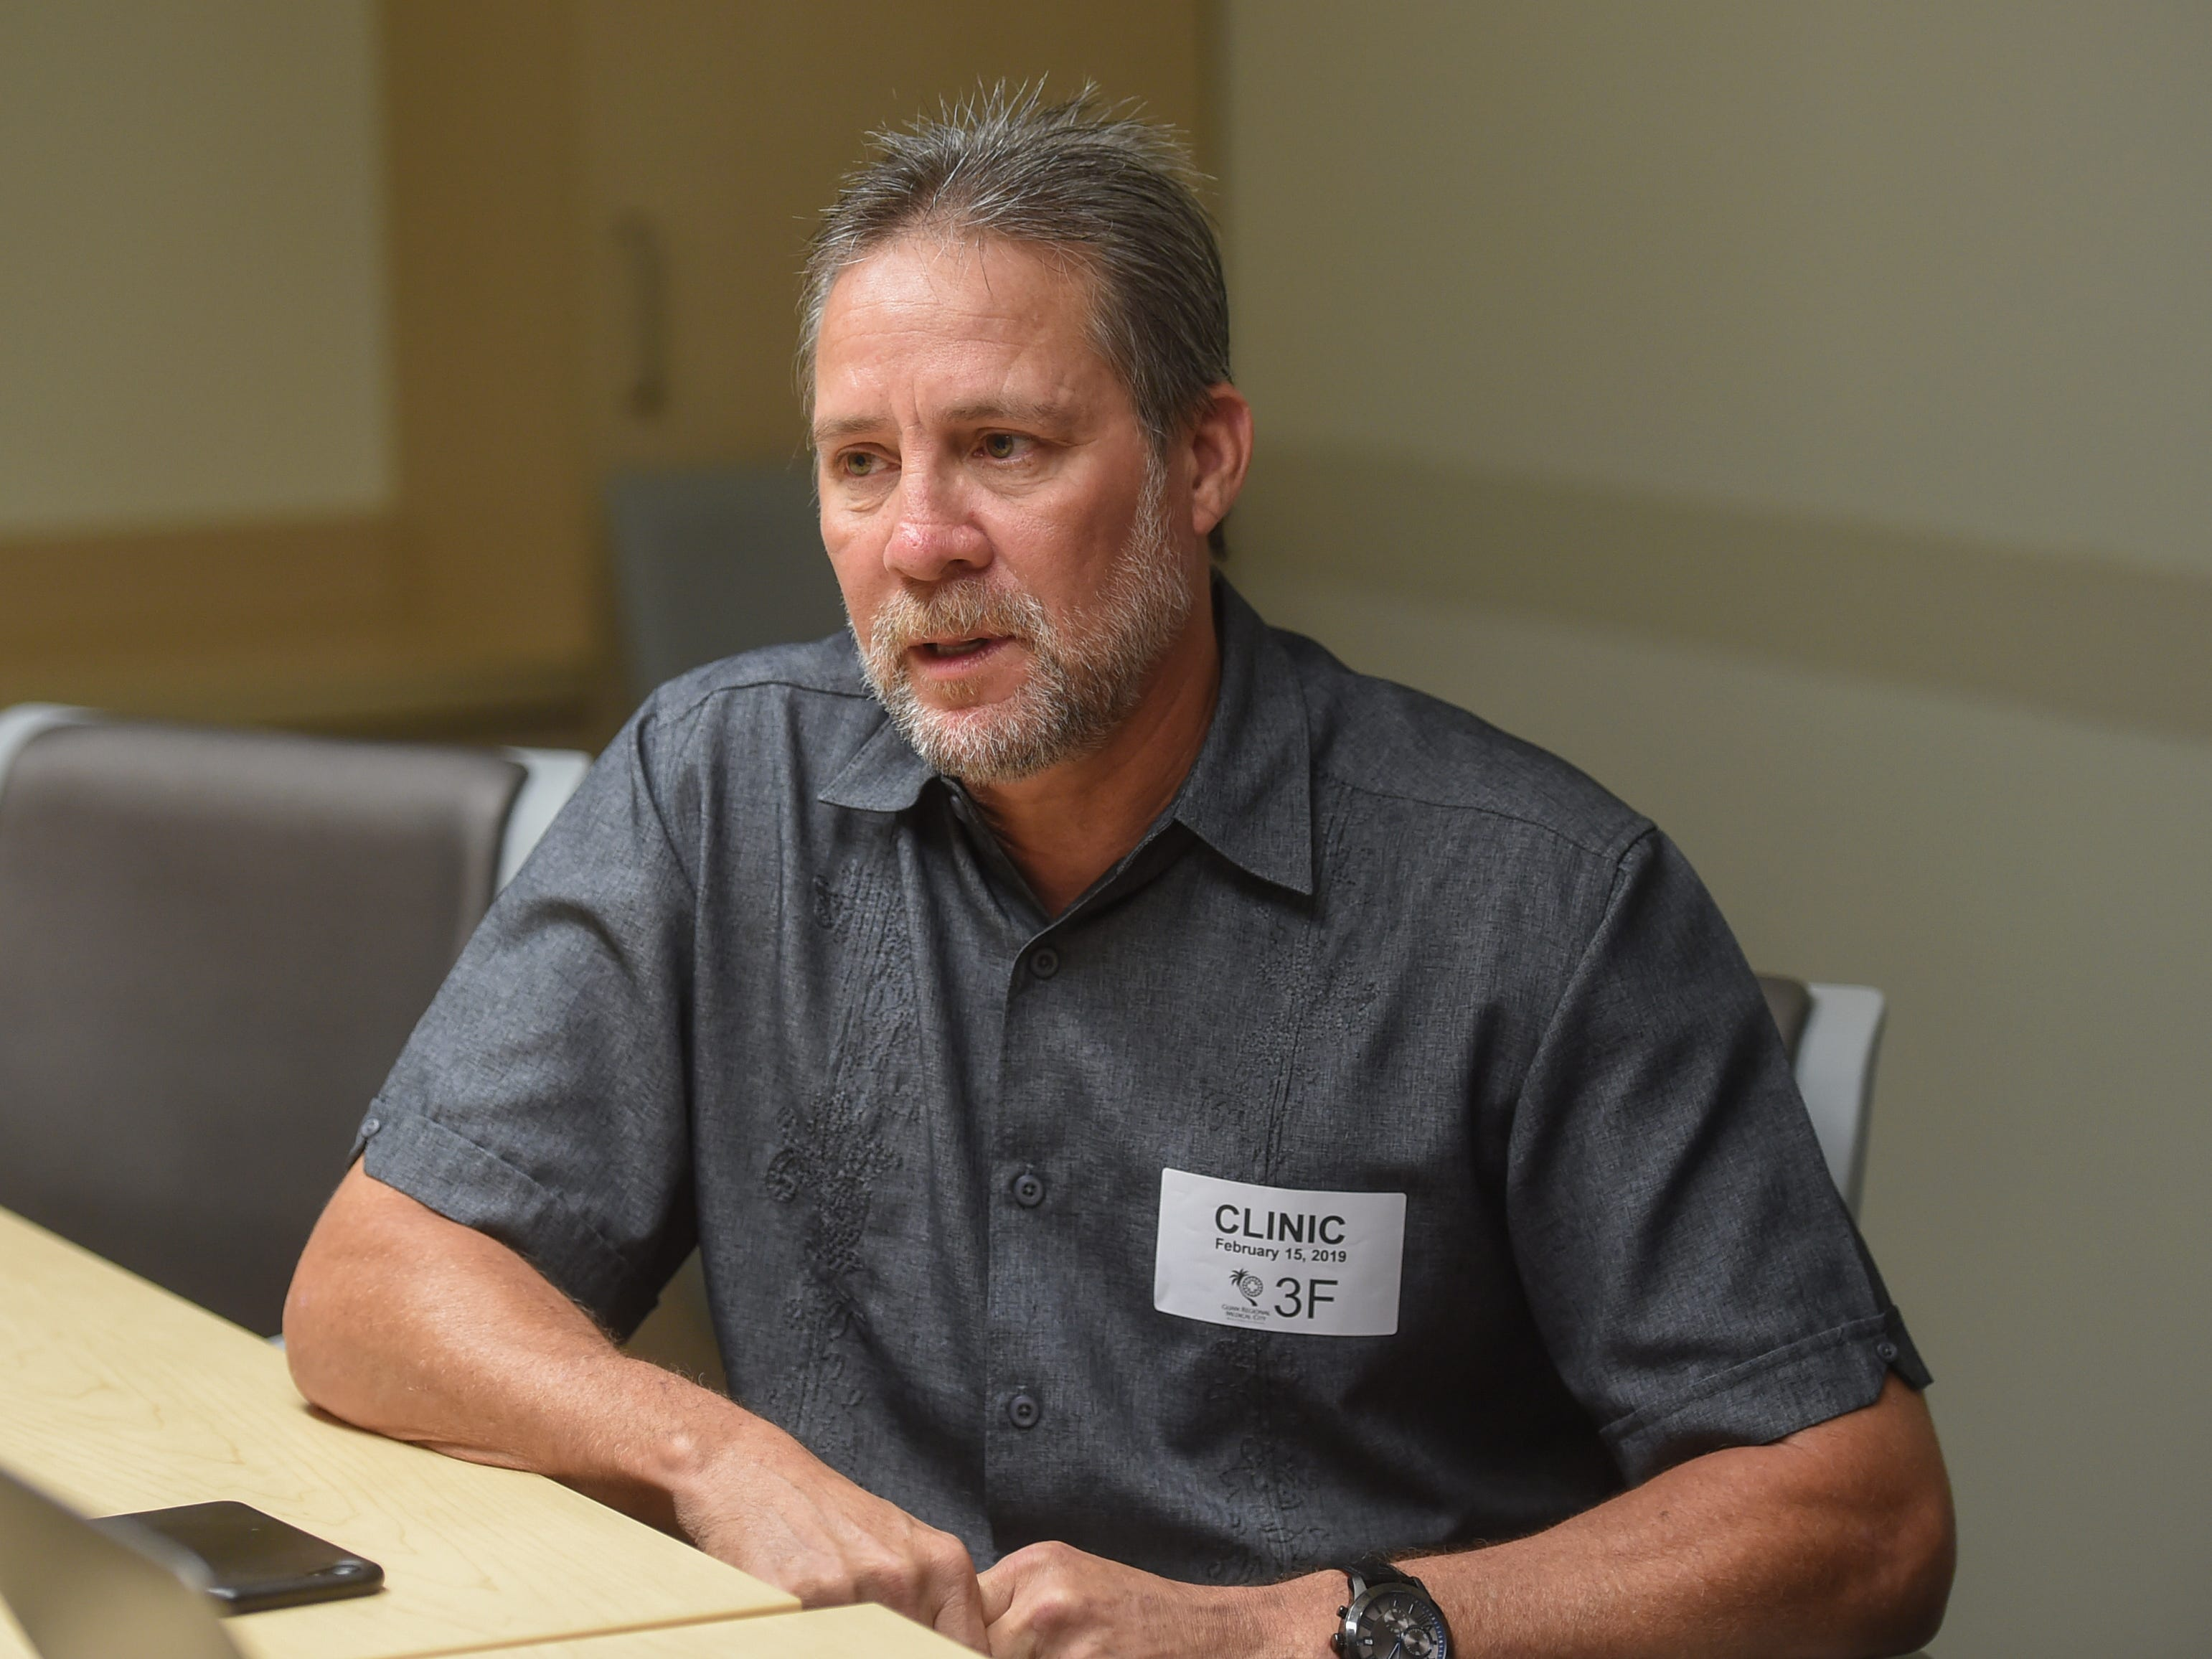 Cano Collazo-Cruz, 56, discusses the surgery that removed a tumor from a nerve in his right leg at the Guam Regional Medical City on Feb. 15, 2019.